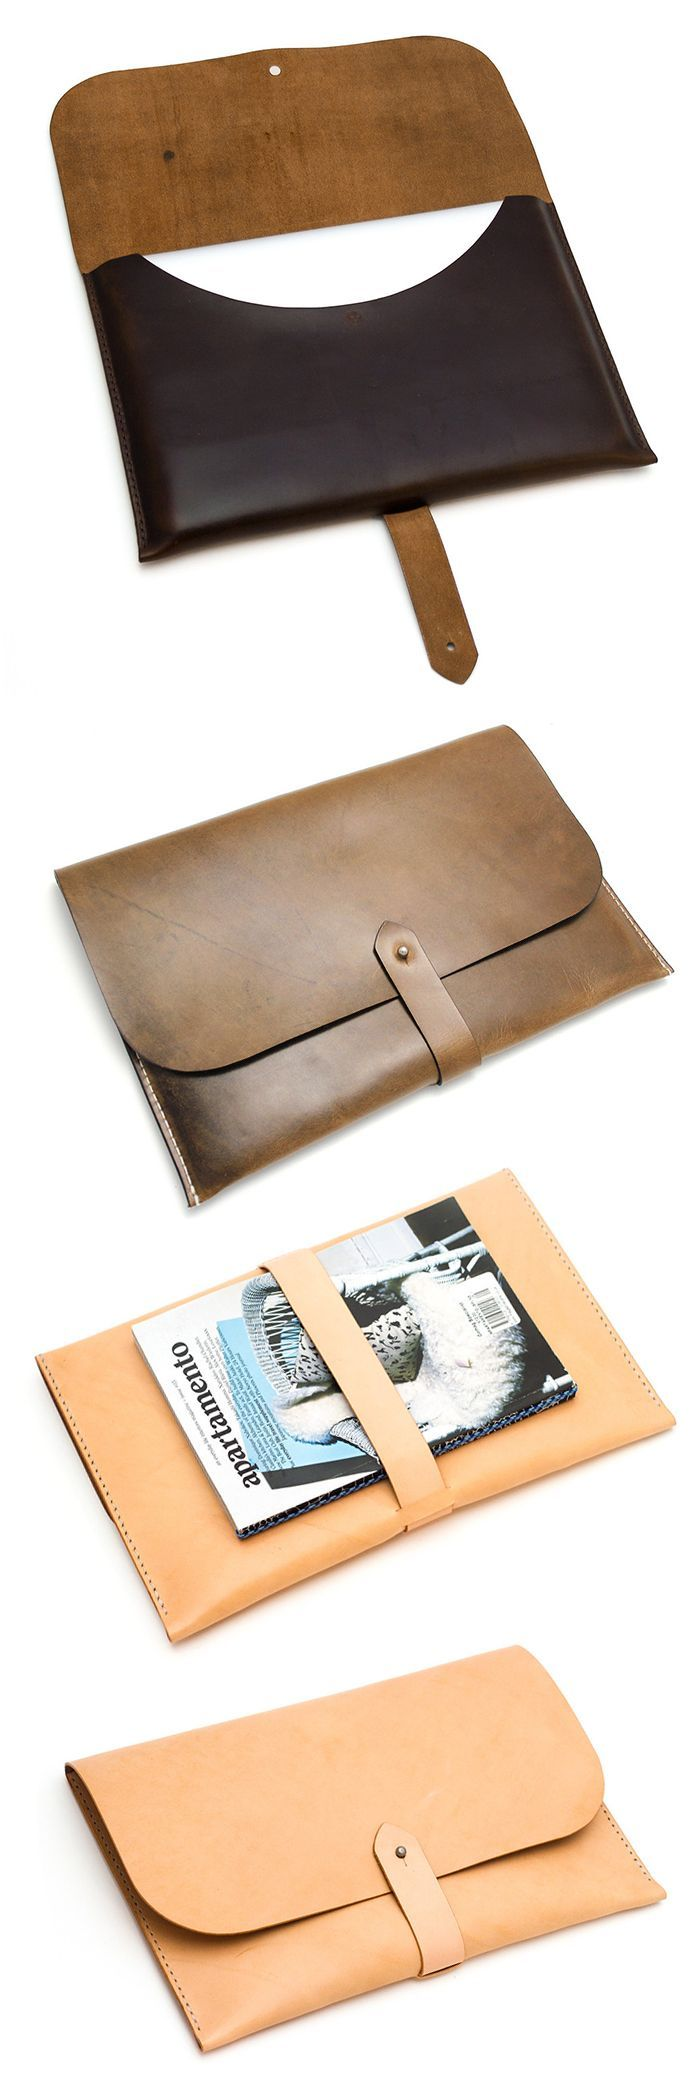 Get Inspired: Handmade Leather Perfection from Teranishi: